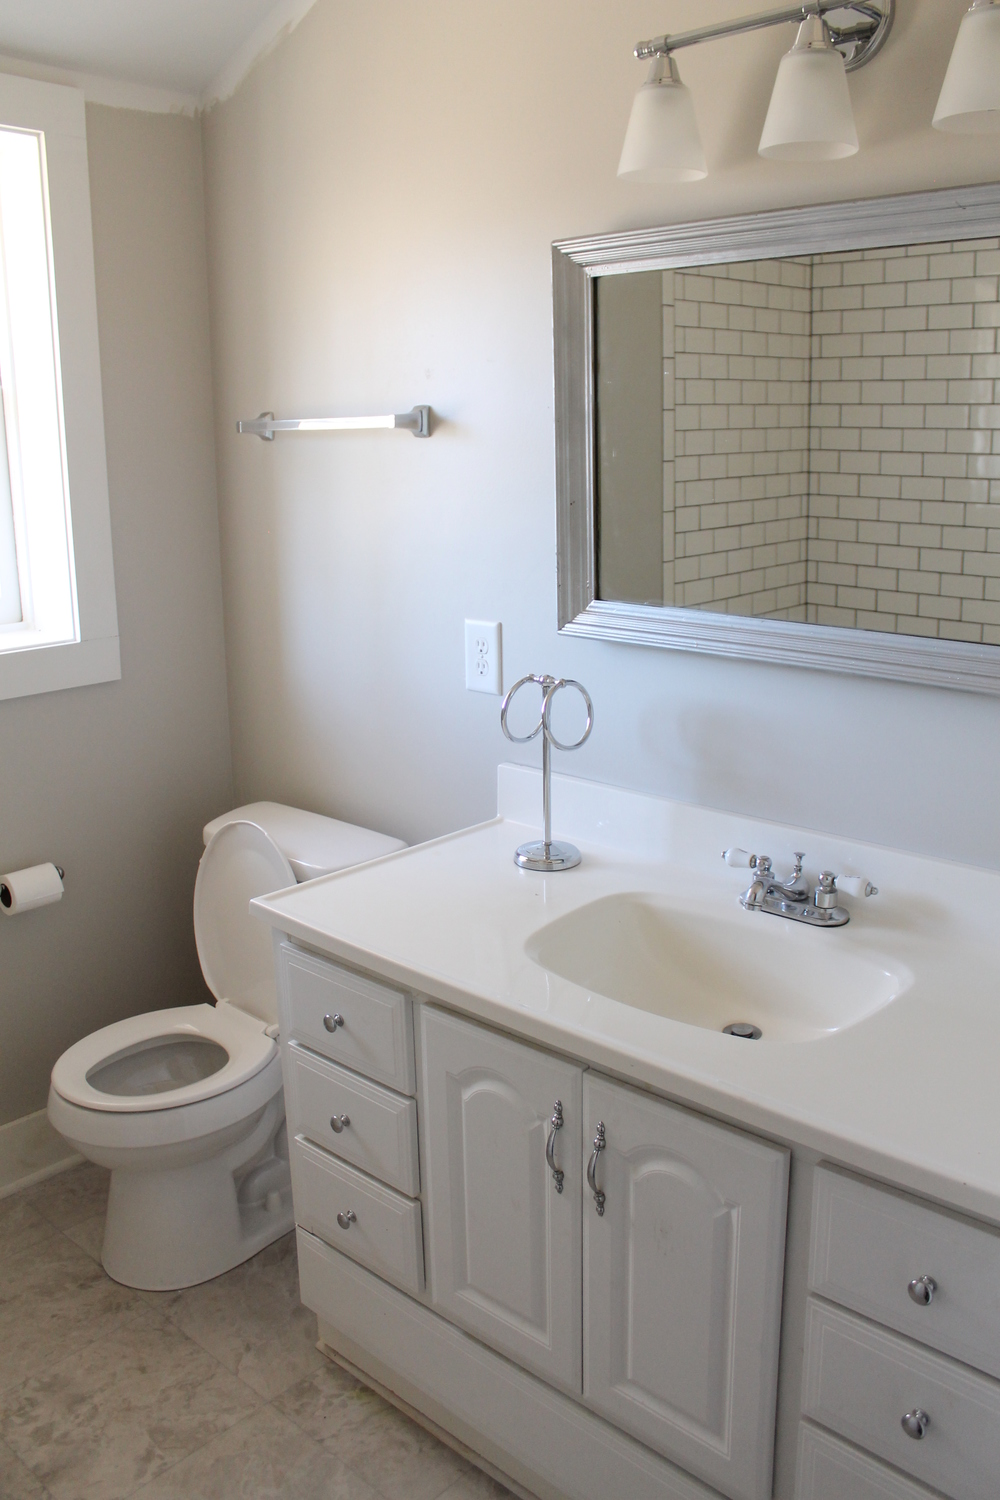 Elizabeth Burns Design | Bathroom Renovation on a Budget - diy subway tile, craigslist vanity, SW Agreeable Gray, vinyl flooring